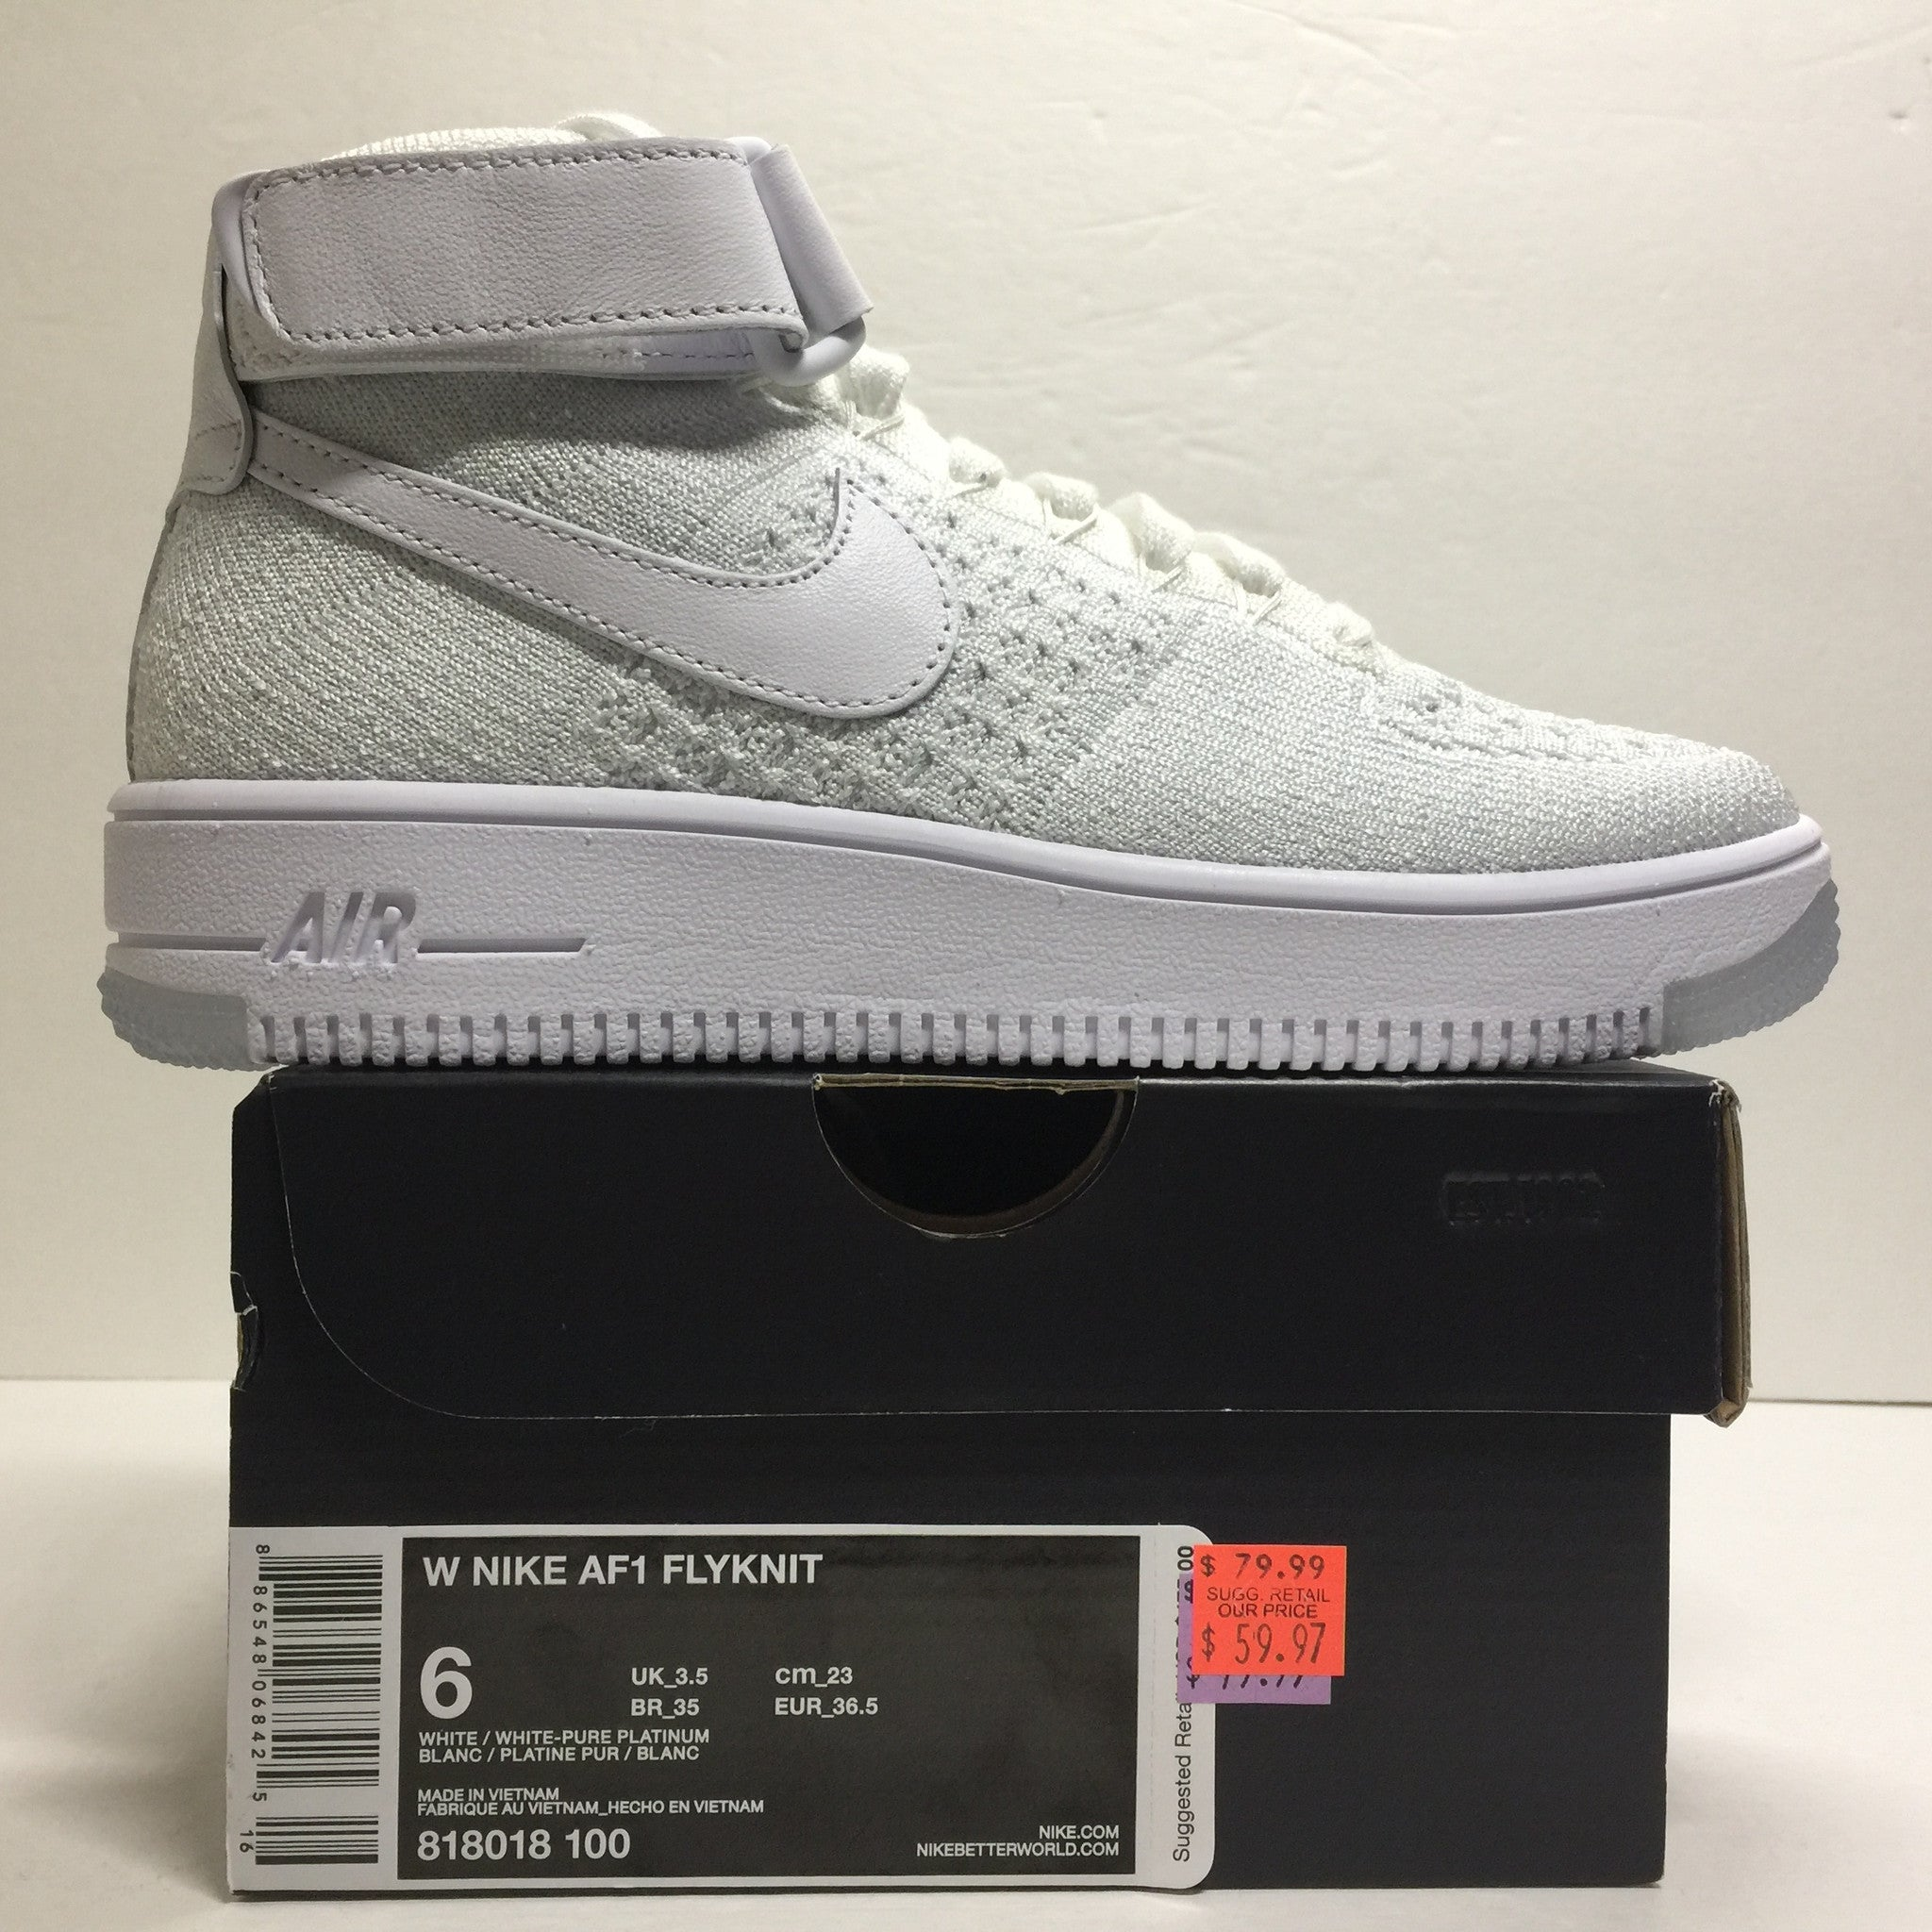 DS W Nike Air Force 1 Flyknit High White Size 6/6.5/Size 7.5 - DOPEFOOT  - 2